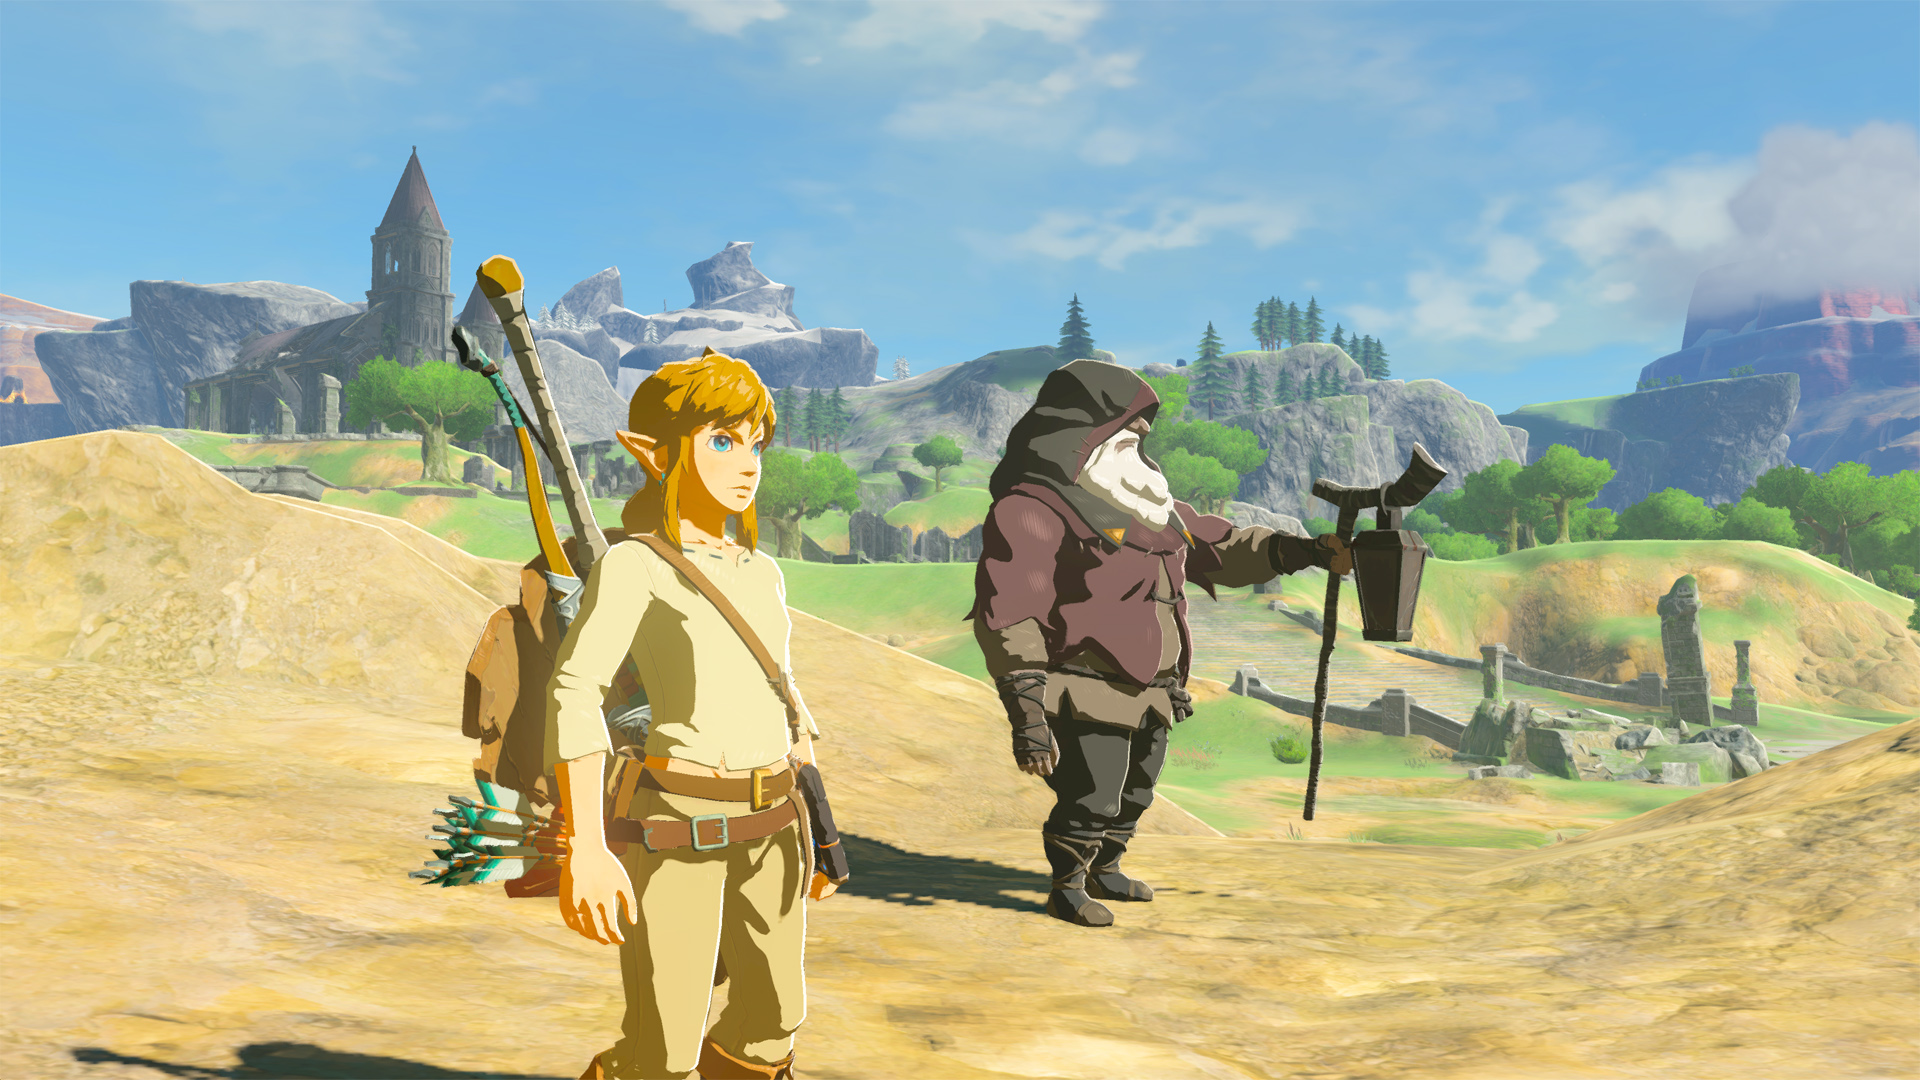 Zelda: Breath of the Wild with co-op sounds like an absolute delight screenshot